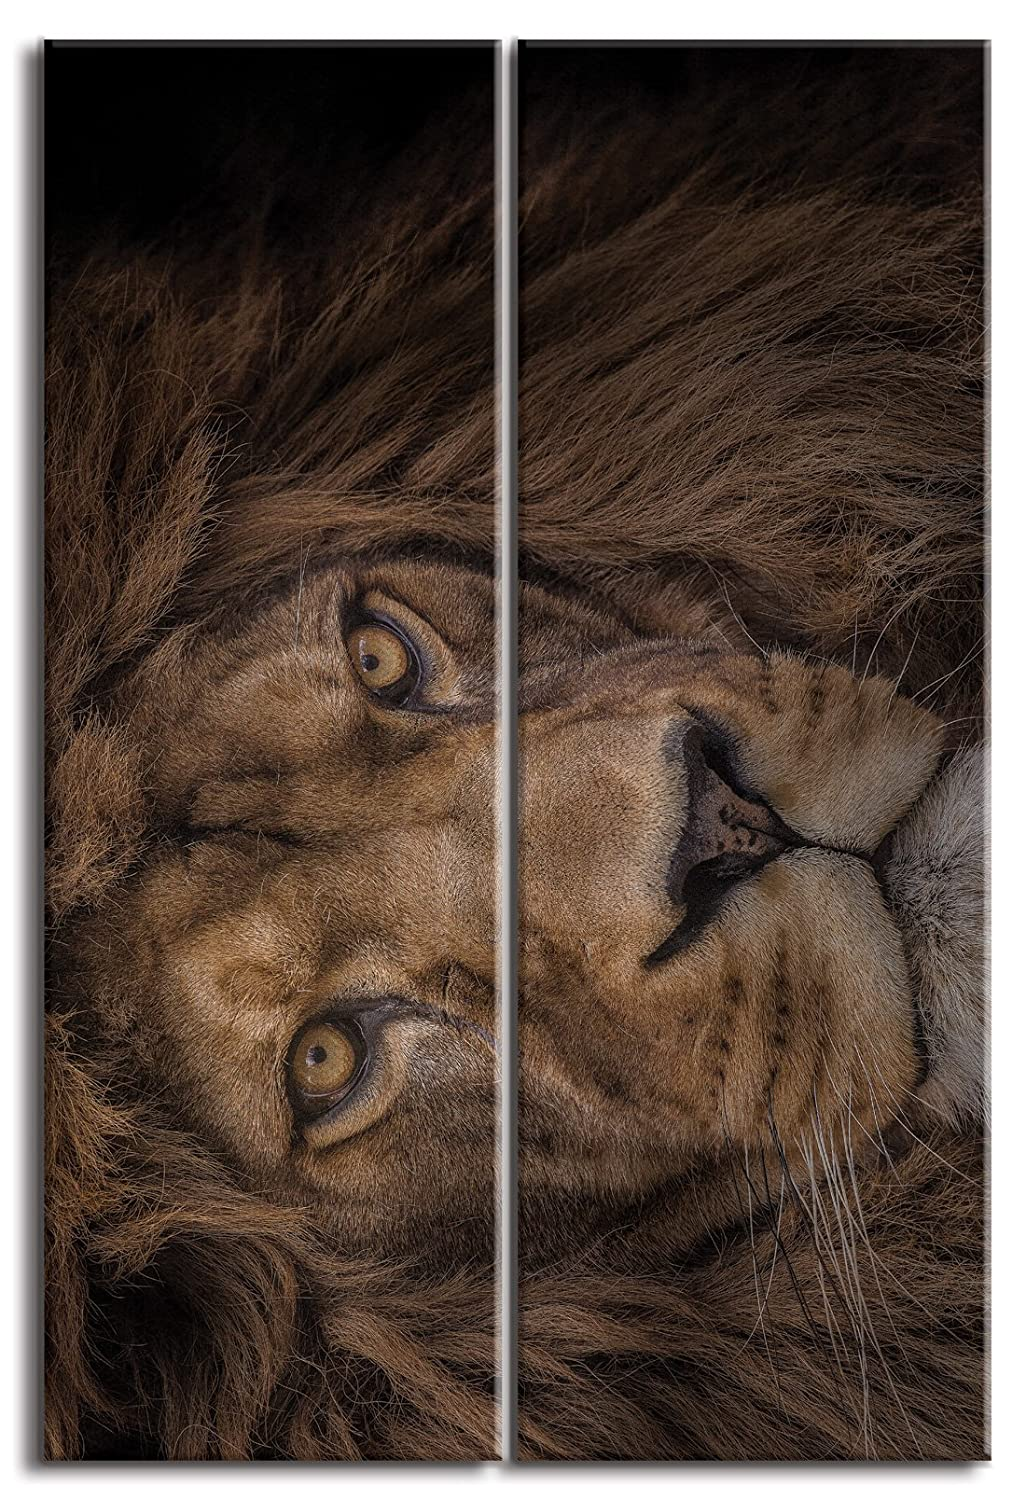 JP London Ready to Hang and Proudly made in North America DMCNV1X375633 Jpl and Ashley Vincent Present Brink of Extinction Lion Head Africa Face 2in Thick 2 Piece Each 12in by 36in Gallery Heavyweight Canvas Wall Art at Overall 3 2 ft